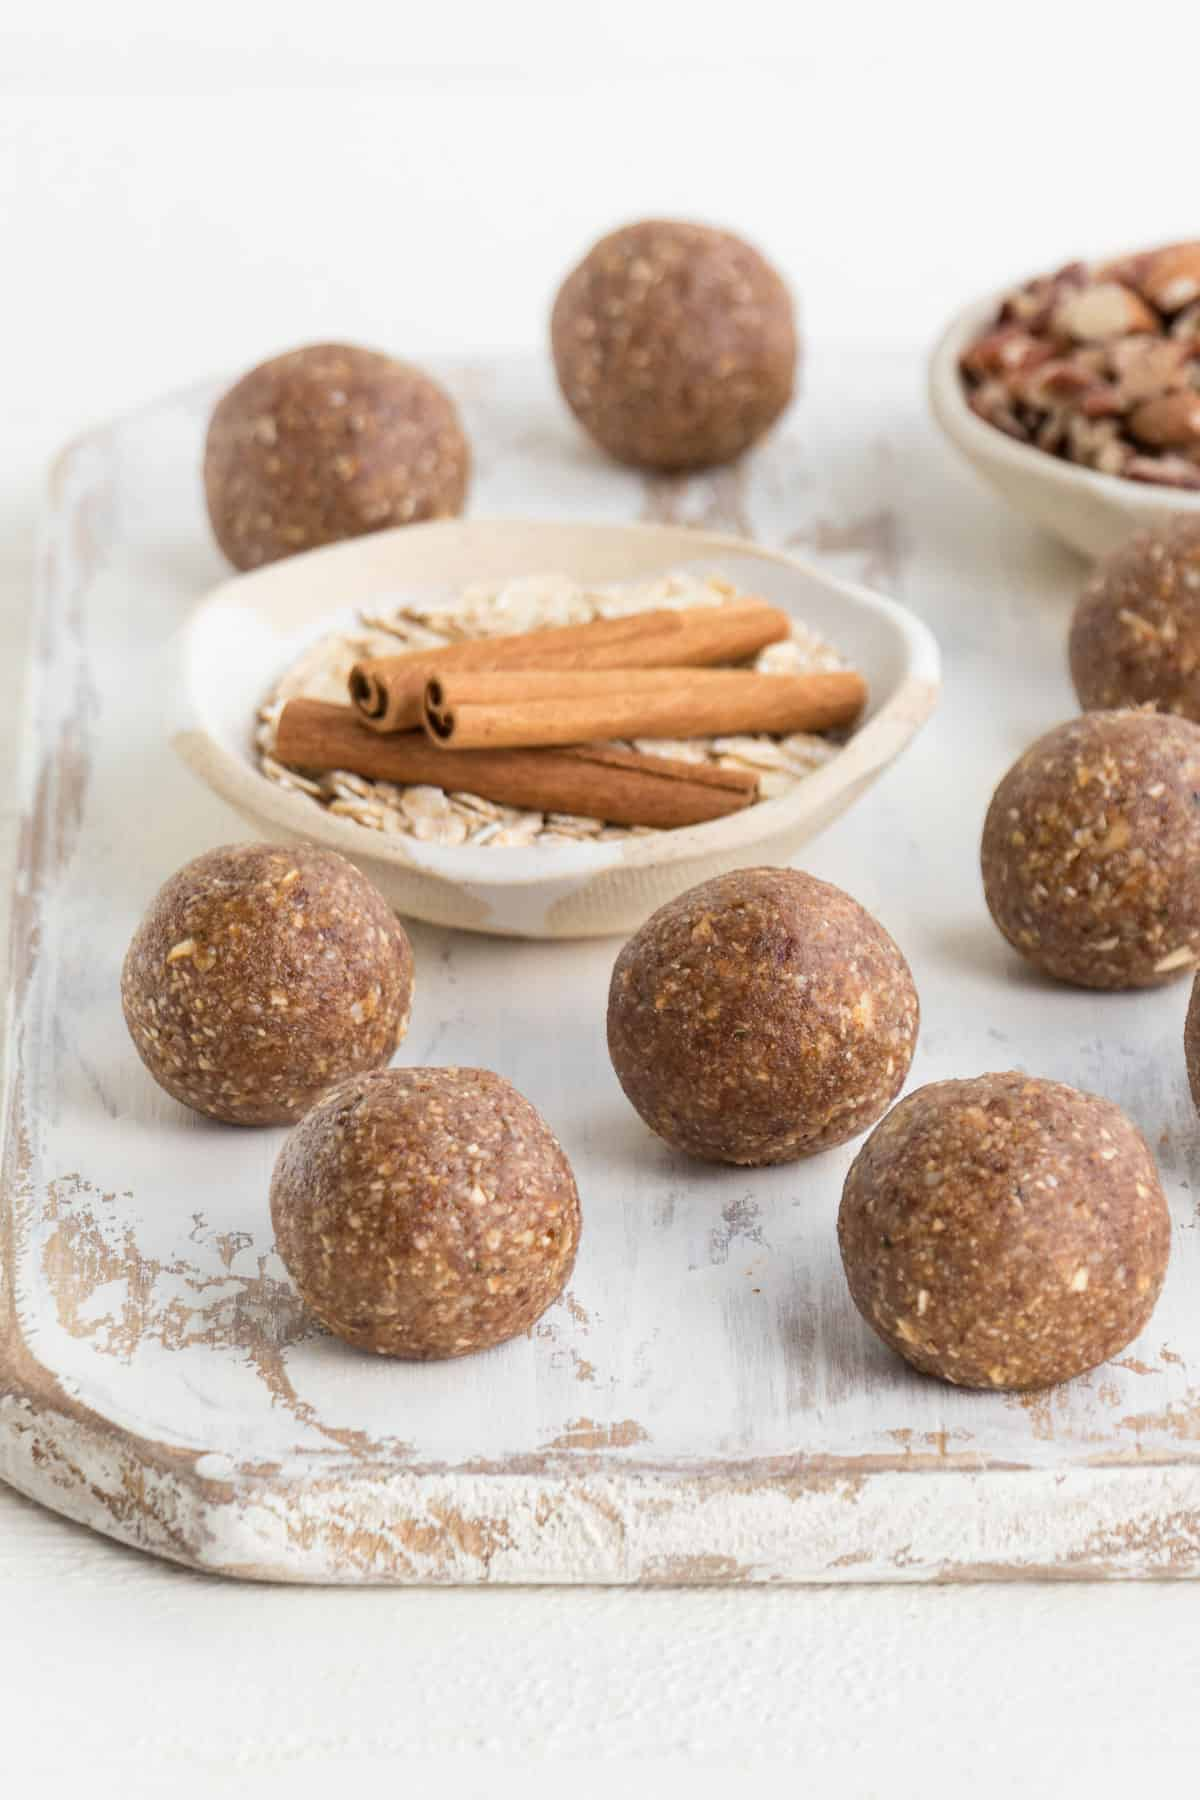 energy balls on a white distressed cutting board with cinnamon sticks